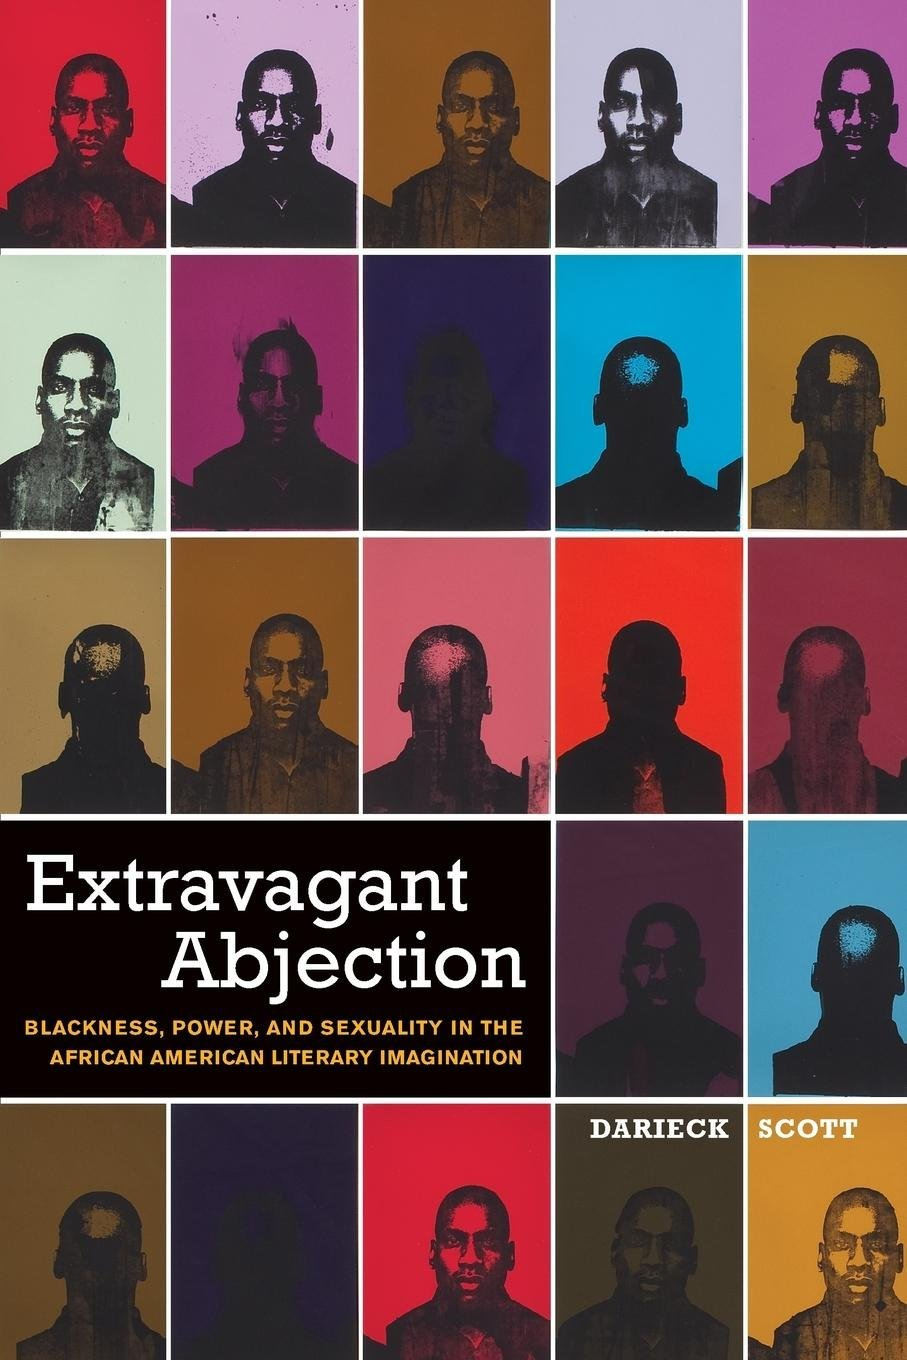 Download Extravagant Abjection: Blackness, Power, and Sexuality in the African American Literary Imagination (Sexual Cultures) ebook